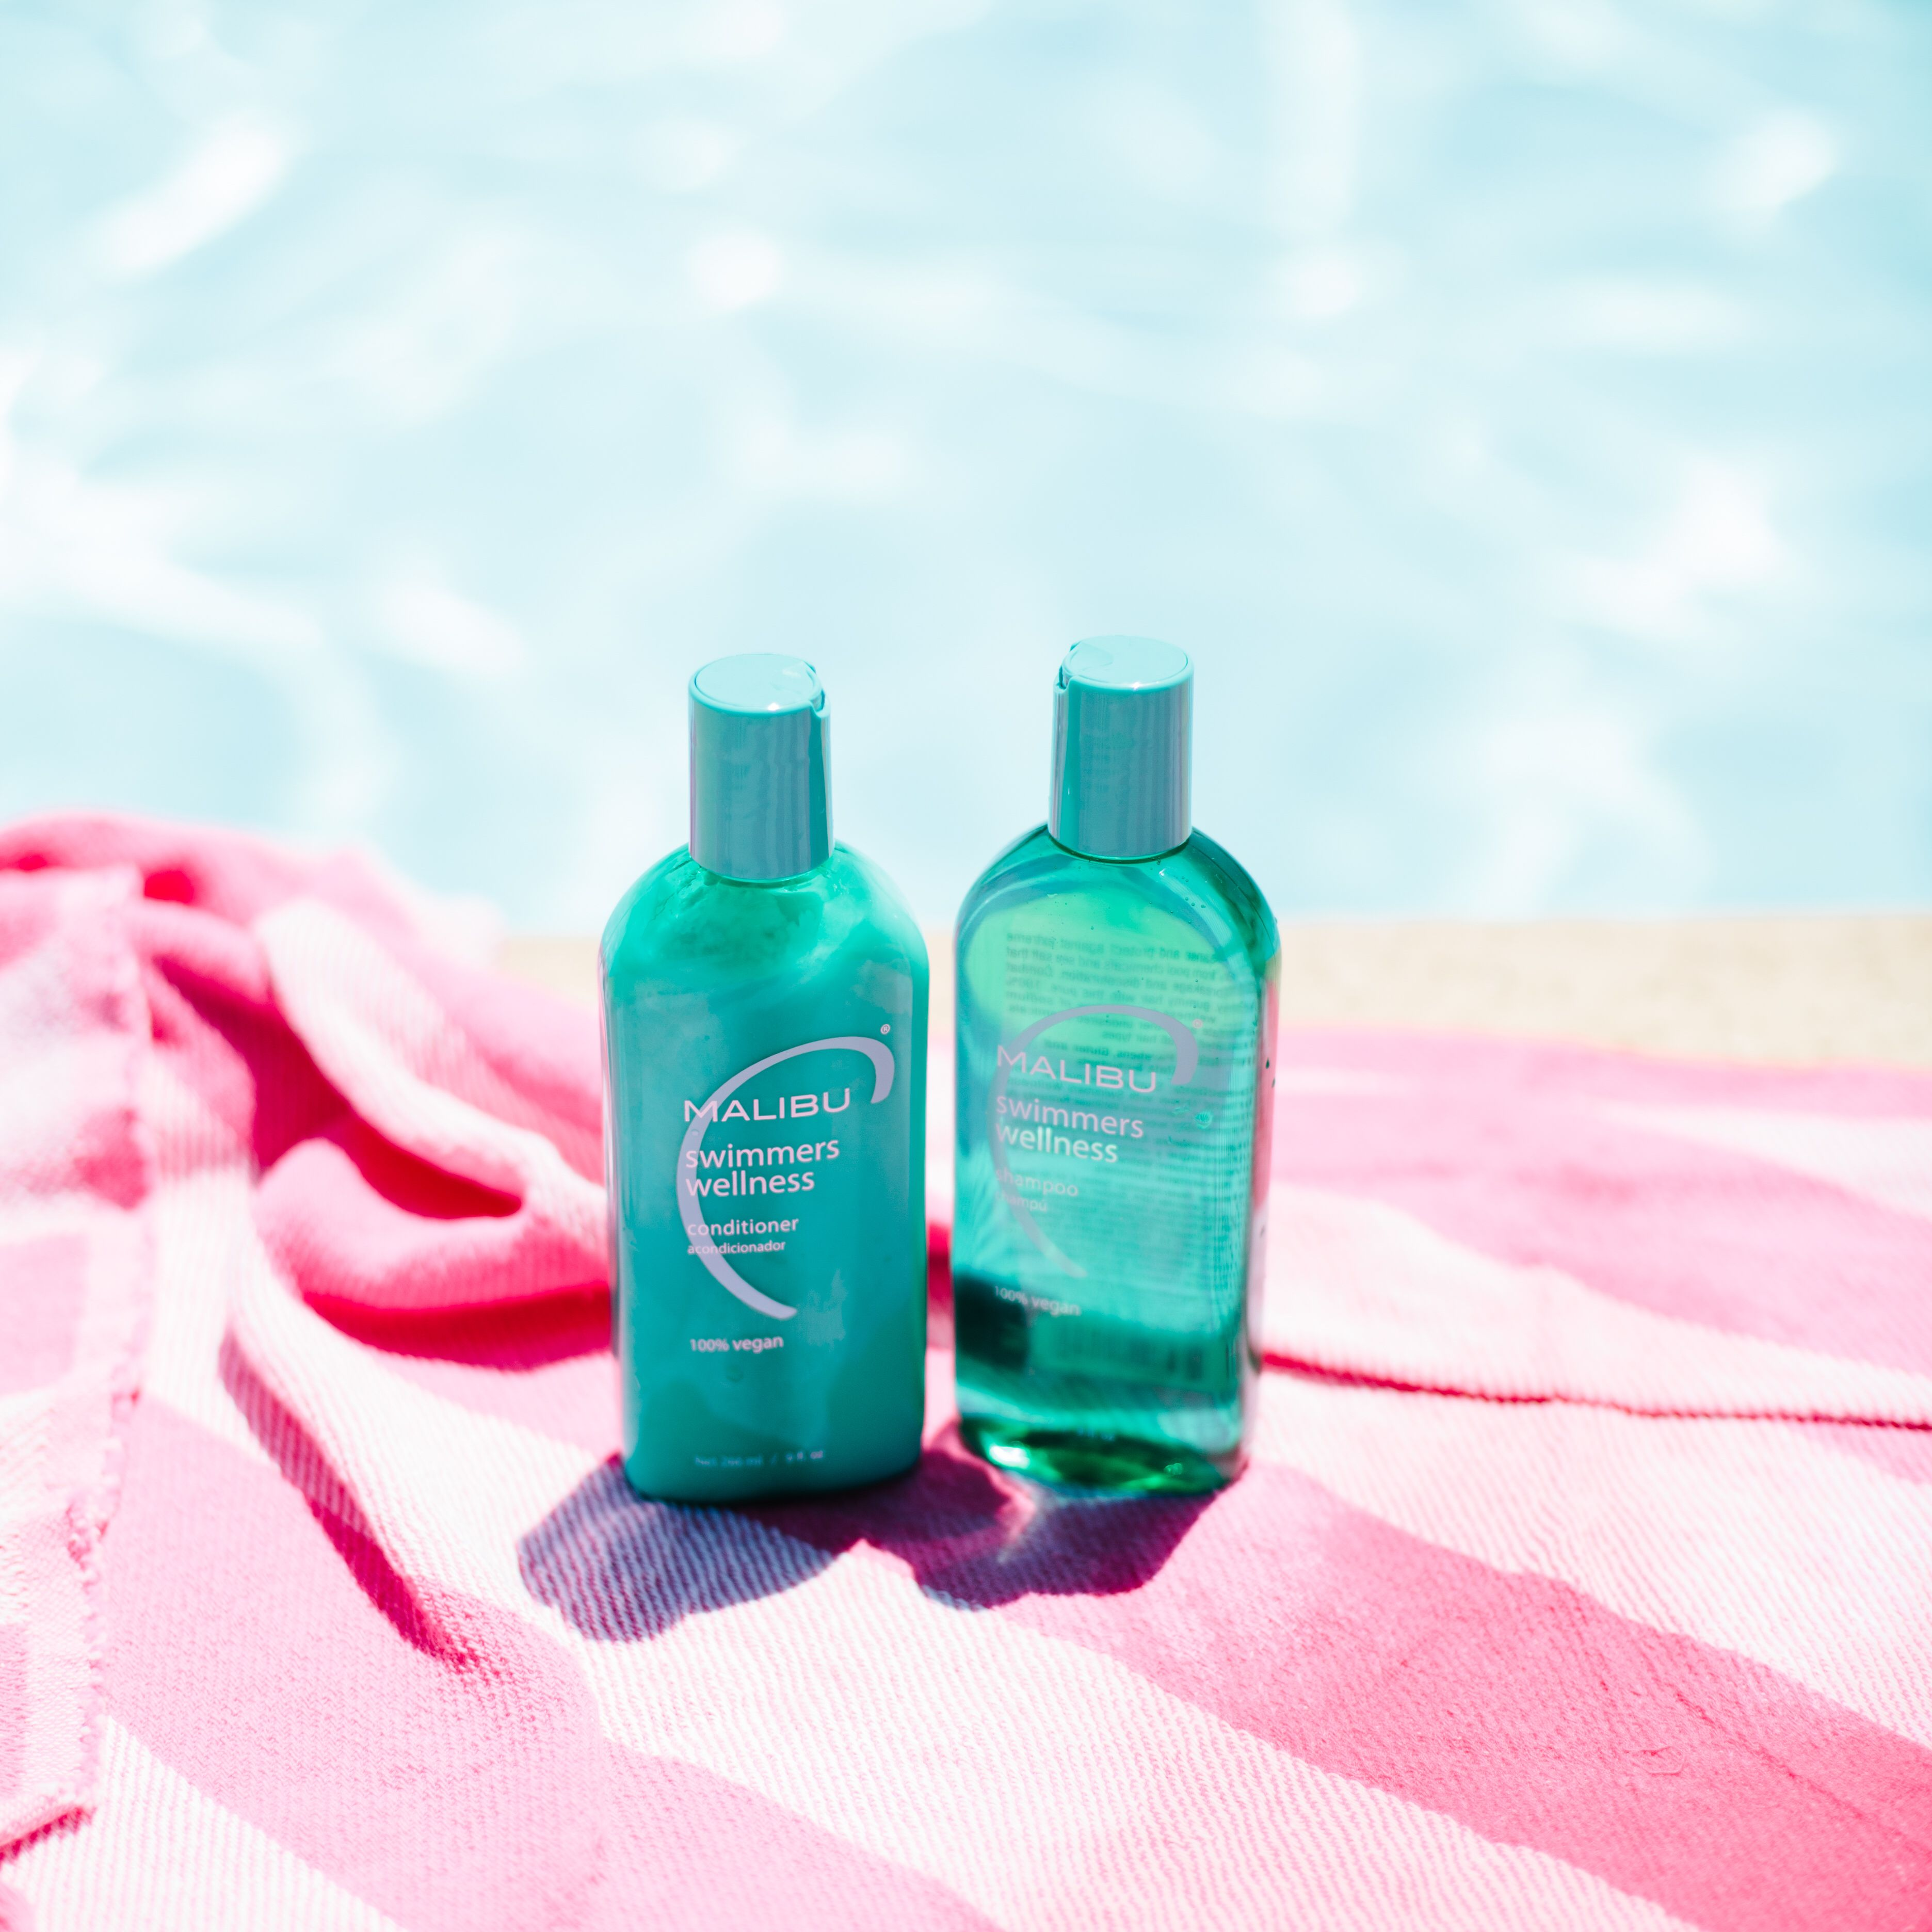 Swimmers Wellness Shampoo and Conditioner Wellness kit